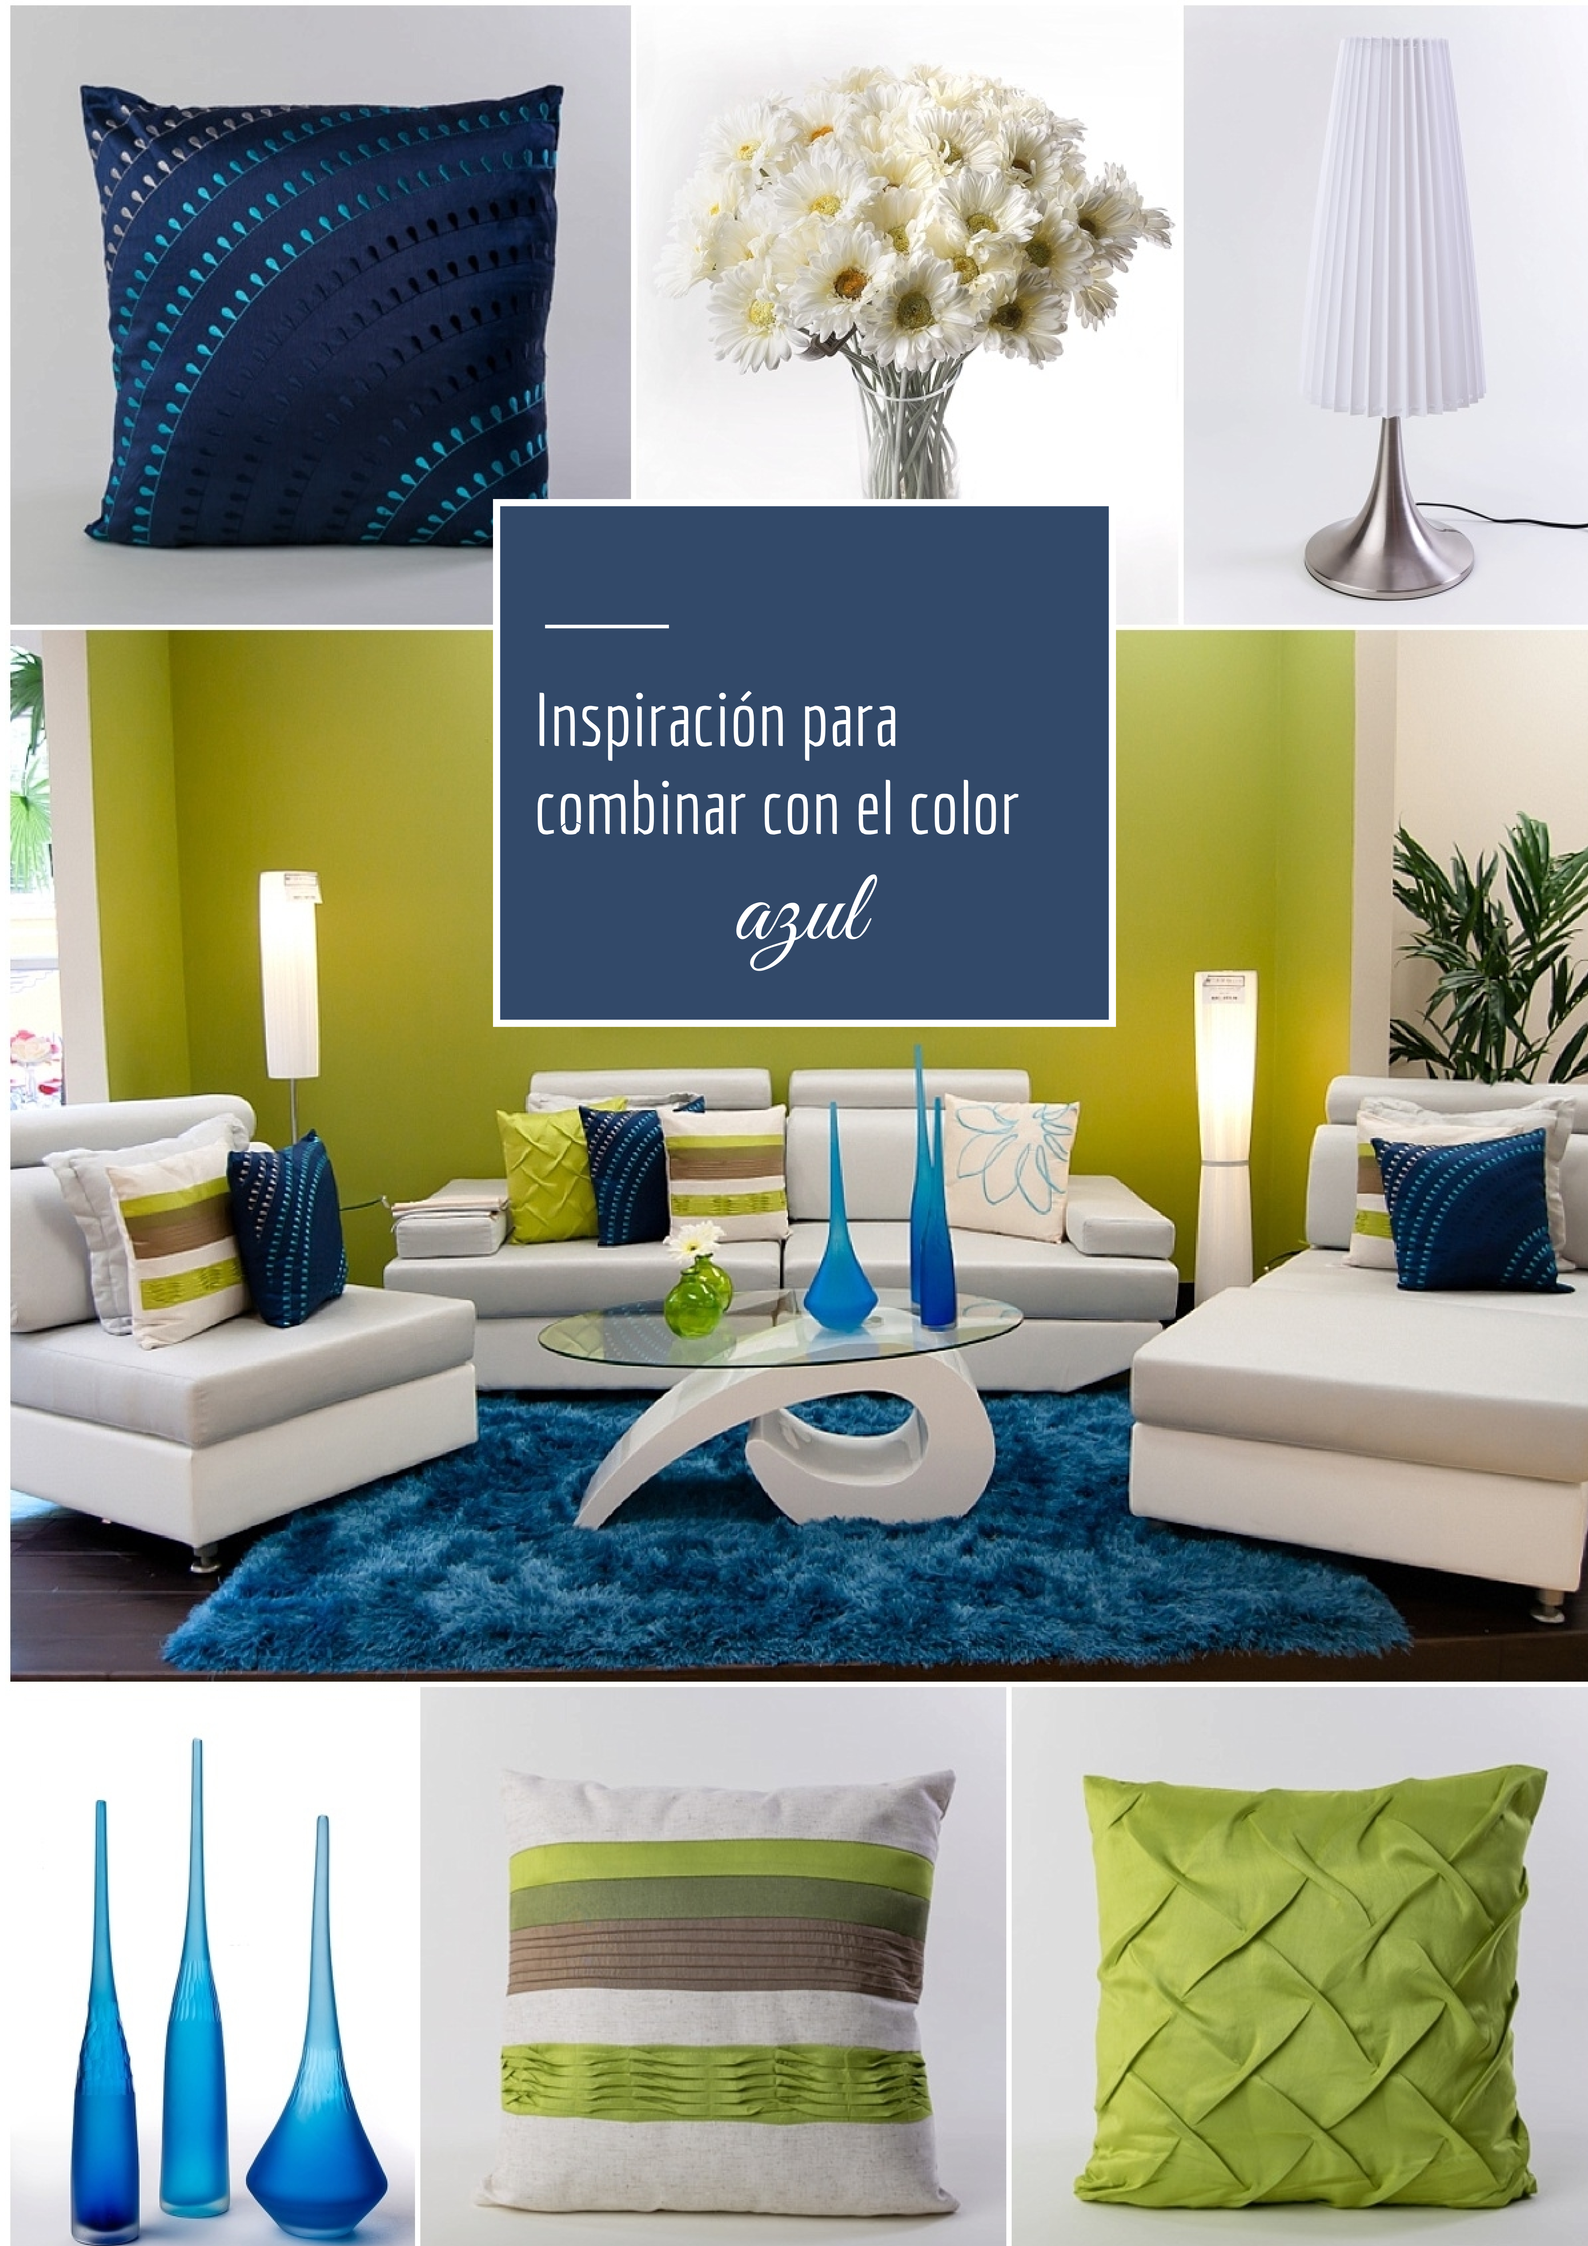 Ideas Para Combinar Con El Color Azul Www Casafebus Com Decoracion De Unas Decoracion De Interiores Decoracion Hogar